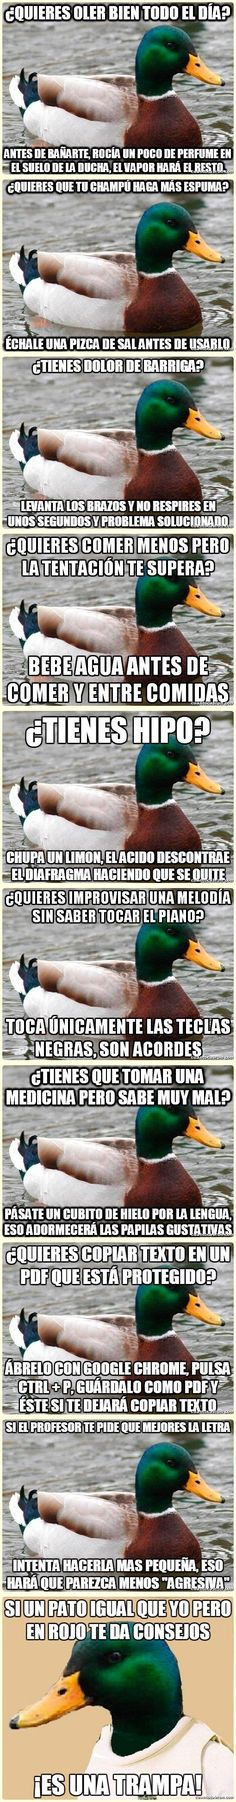 Pato consejero. Life Hacks, Things To Know, Good Things, Curious Facts, Internet, Fun Facts, Funny Quotes, Chiste Meme, Advice